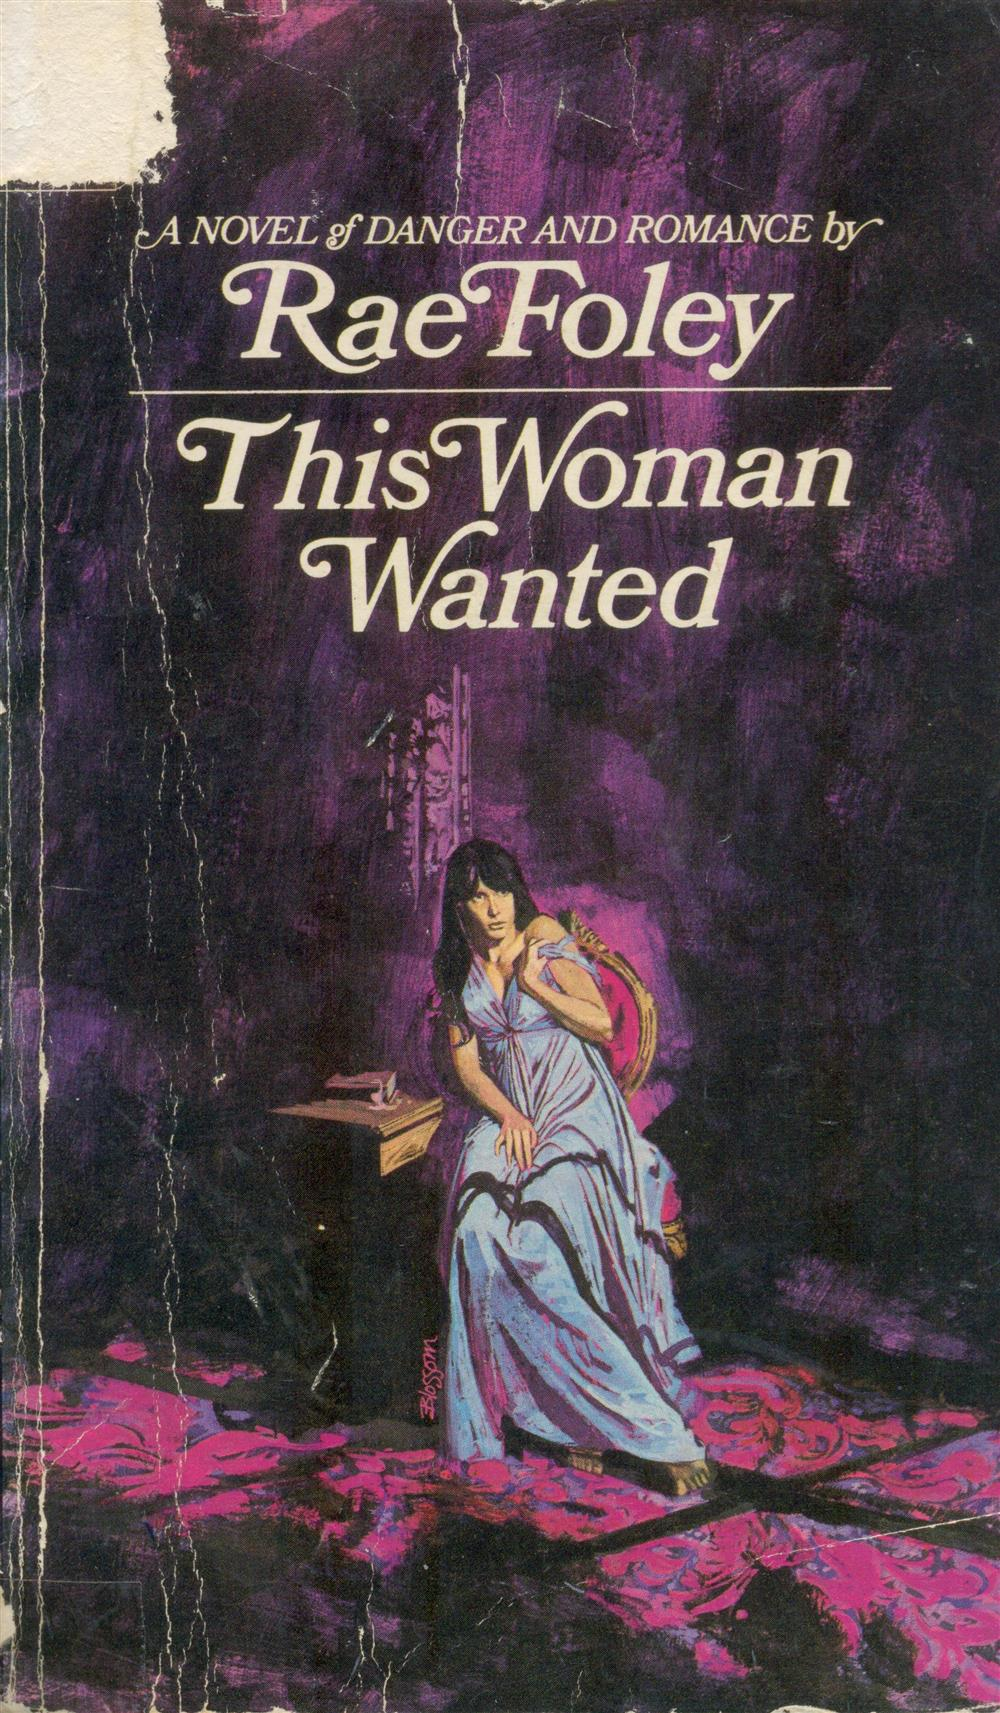 This woman wanted 001.jpg